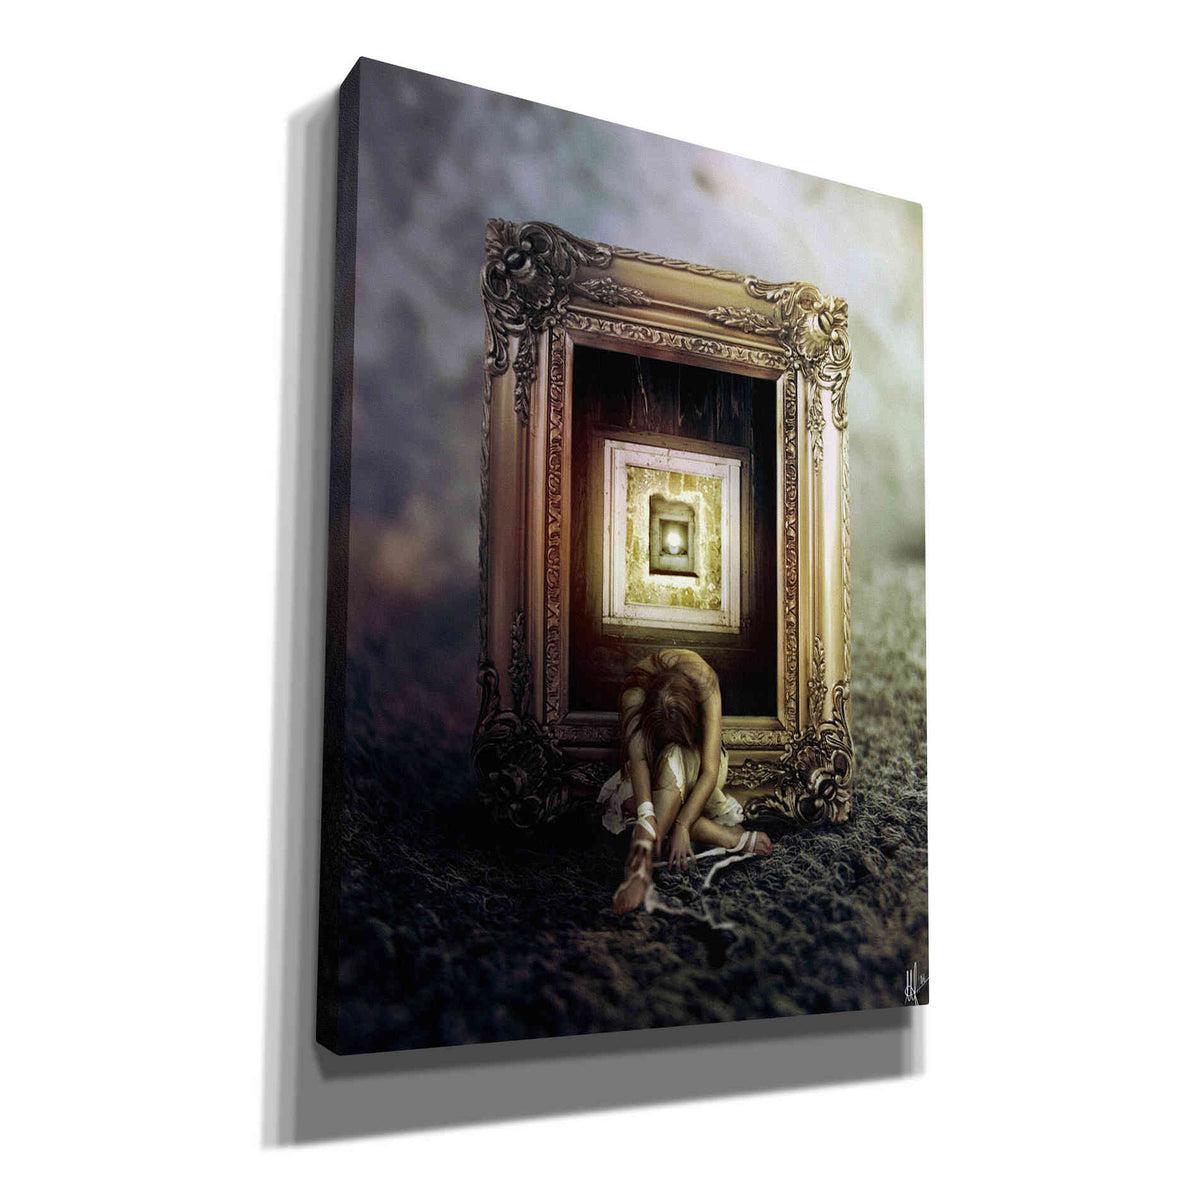 Cortesi Home 'Shrink' by Mario Sanchez Nevado, Canvas Wall Art,Size A Portrait